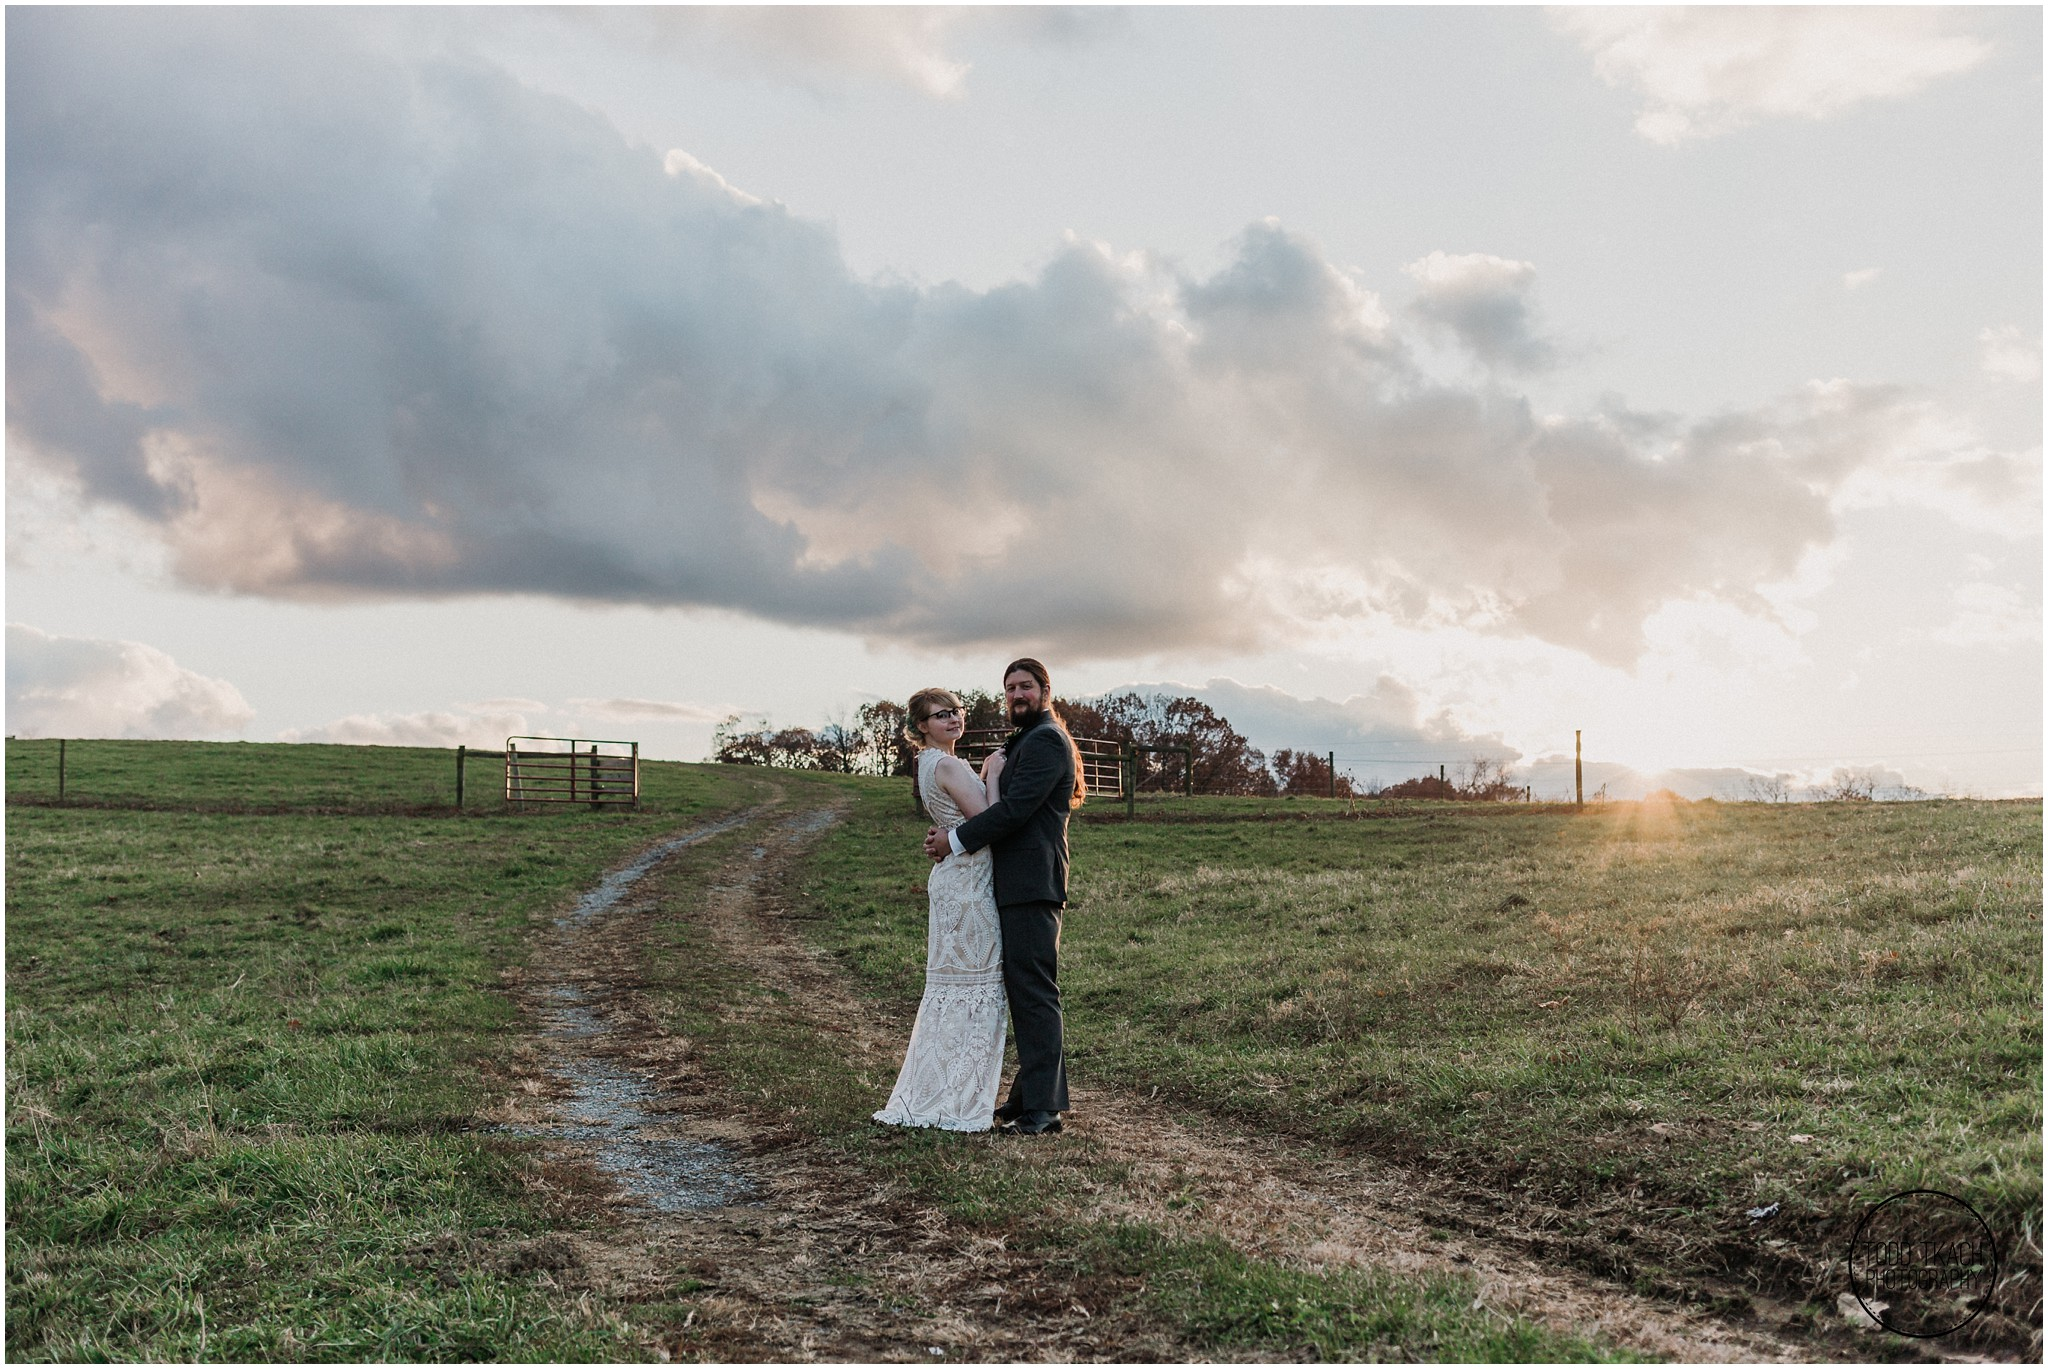 Alyse & Michael Wedding - Outdoor Sunset Portrait